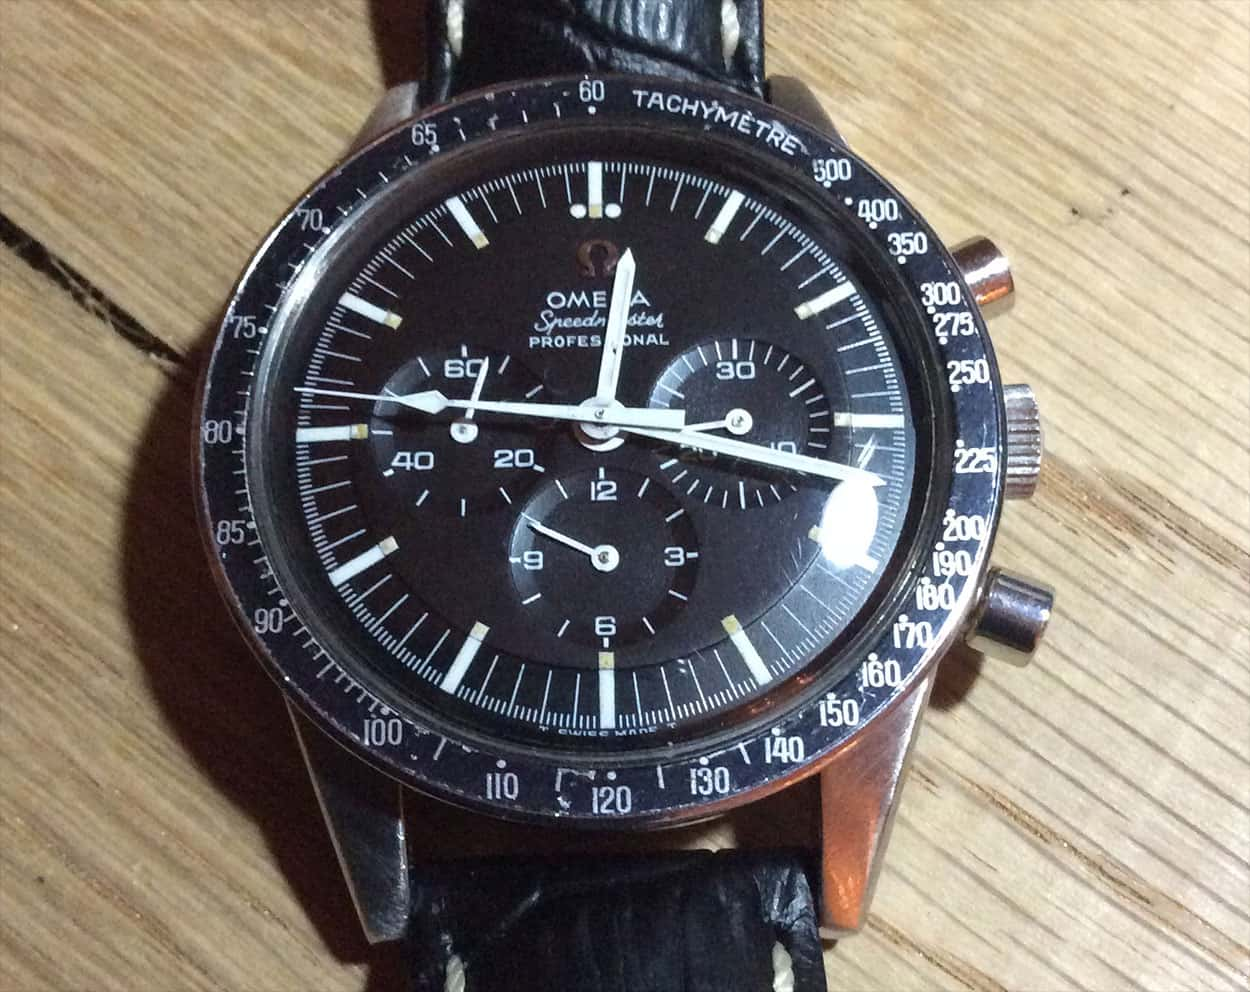 Another straight-lug 145.012 (105.003 case with later caseback?), but does have the 'Professional' text.